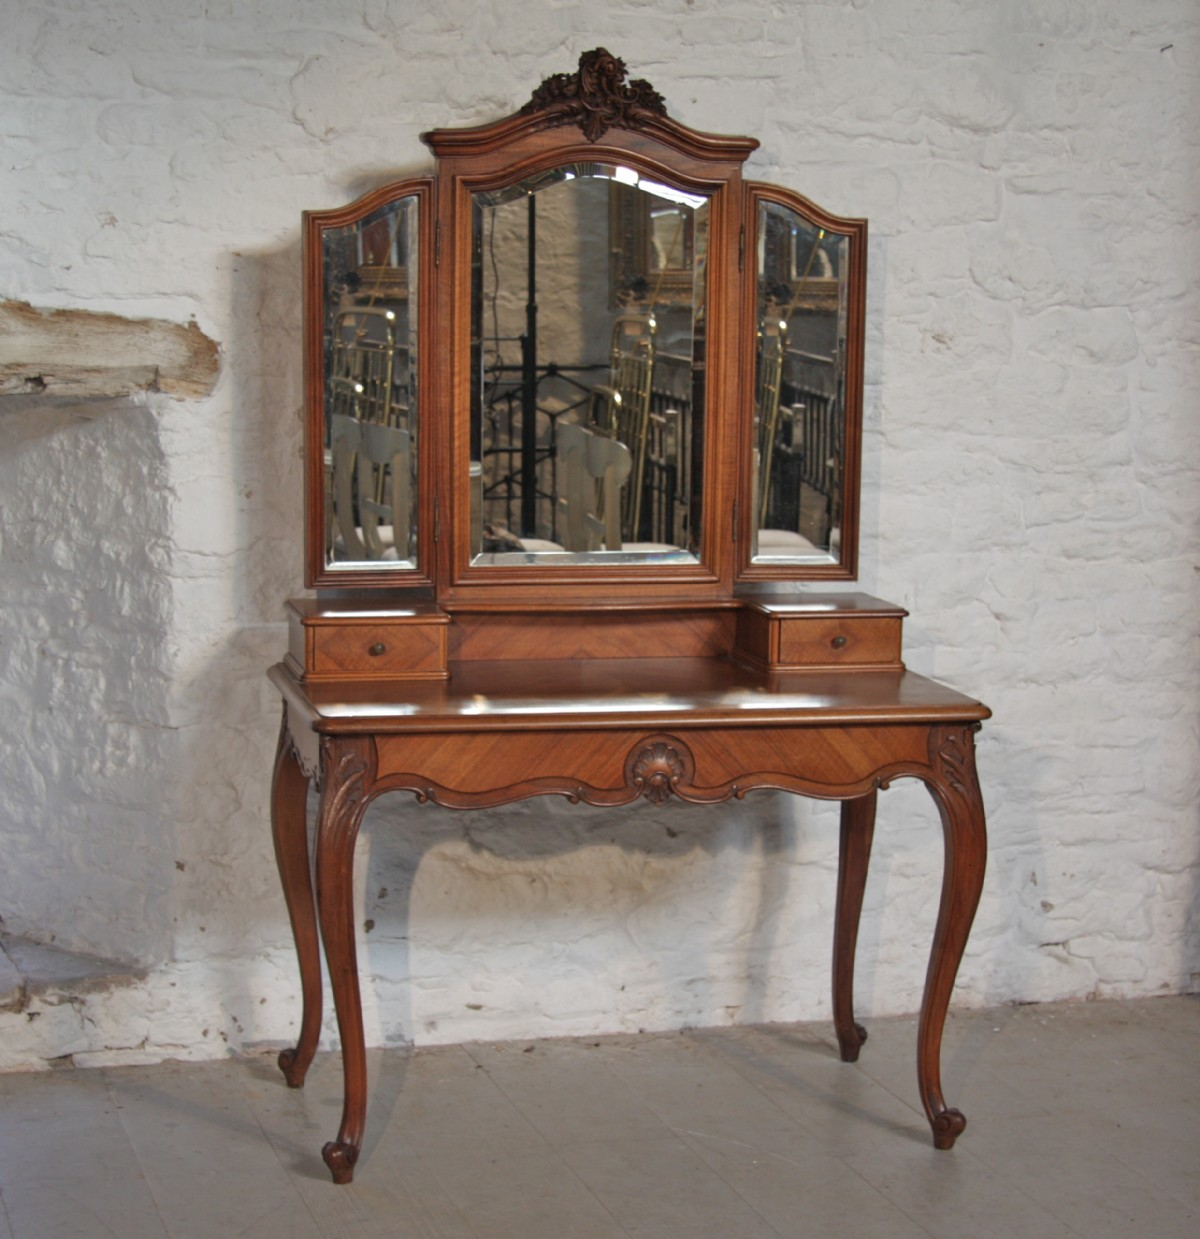 Antique mirrored dressing table - Louis Xv1 Fench Walnut Dressing Table With Triple Mirrors Antique Photo